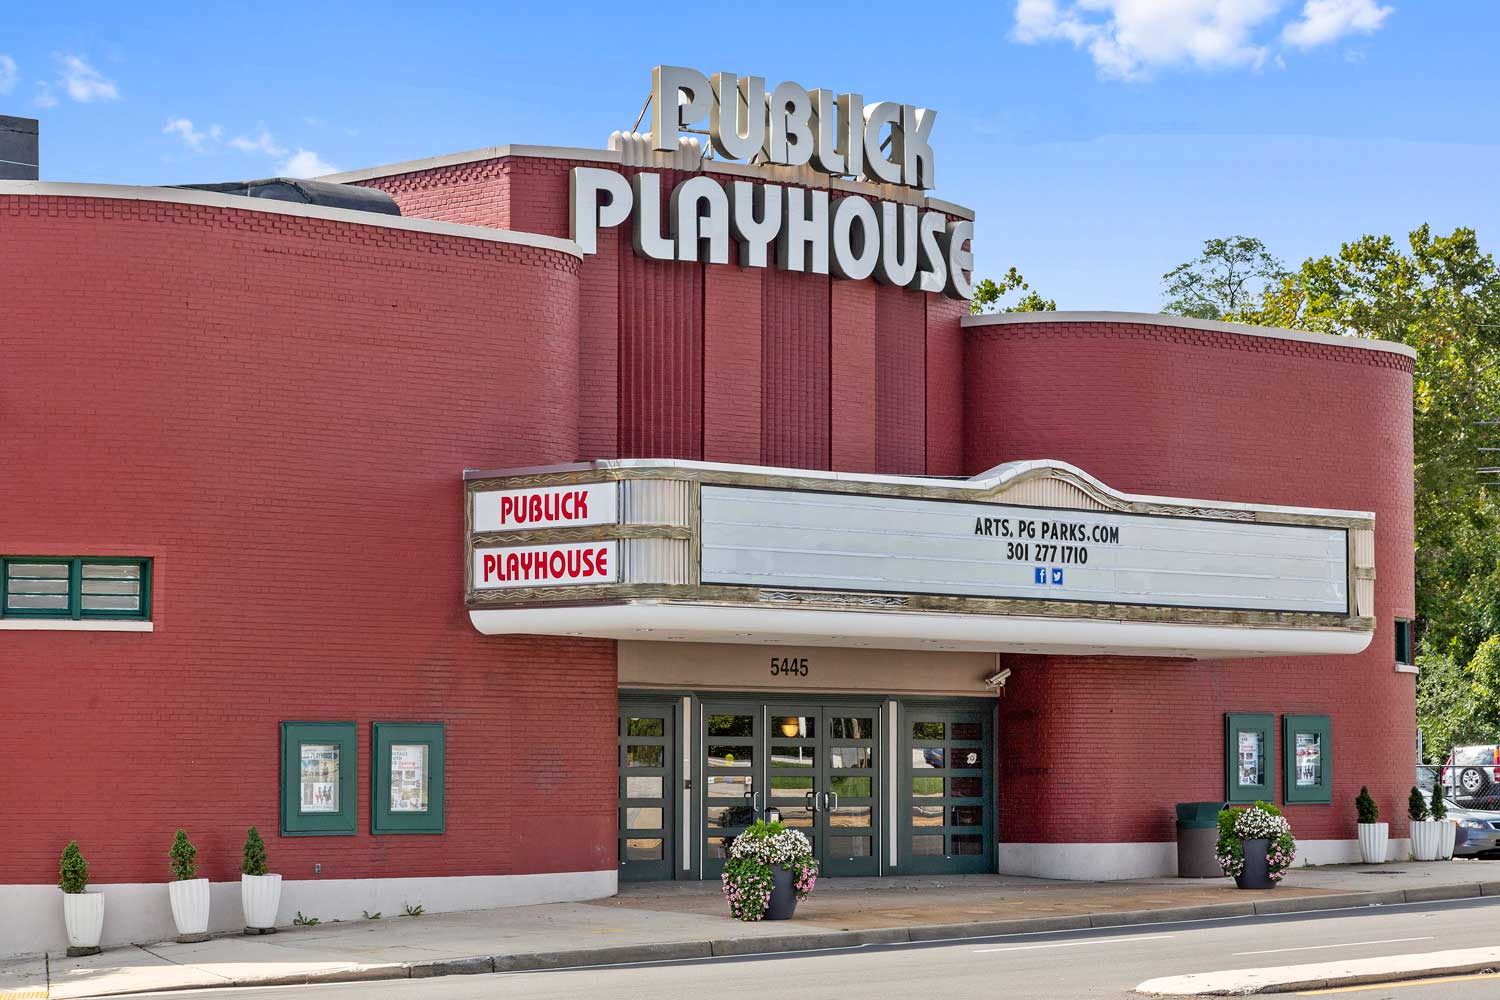 Prince George's Publick Playhouse  is 10 minutes from Carrollon Manor Apartments